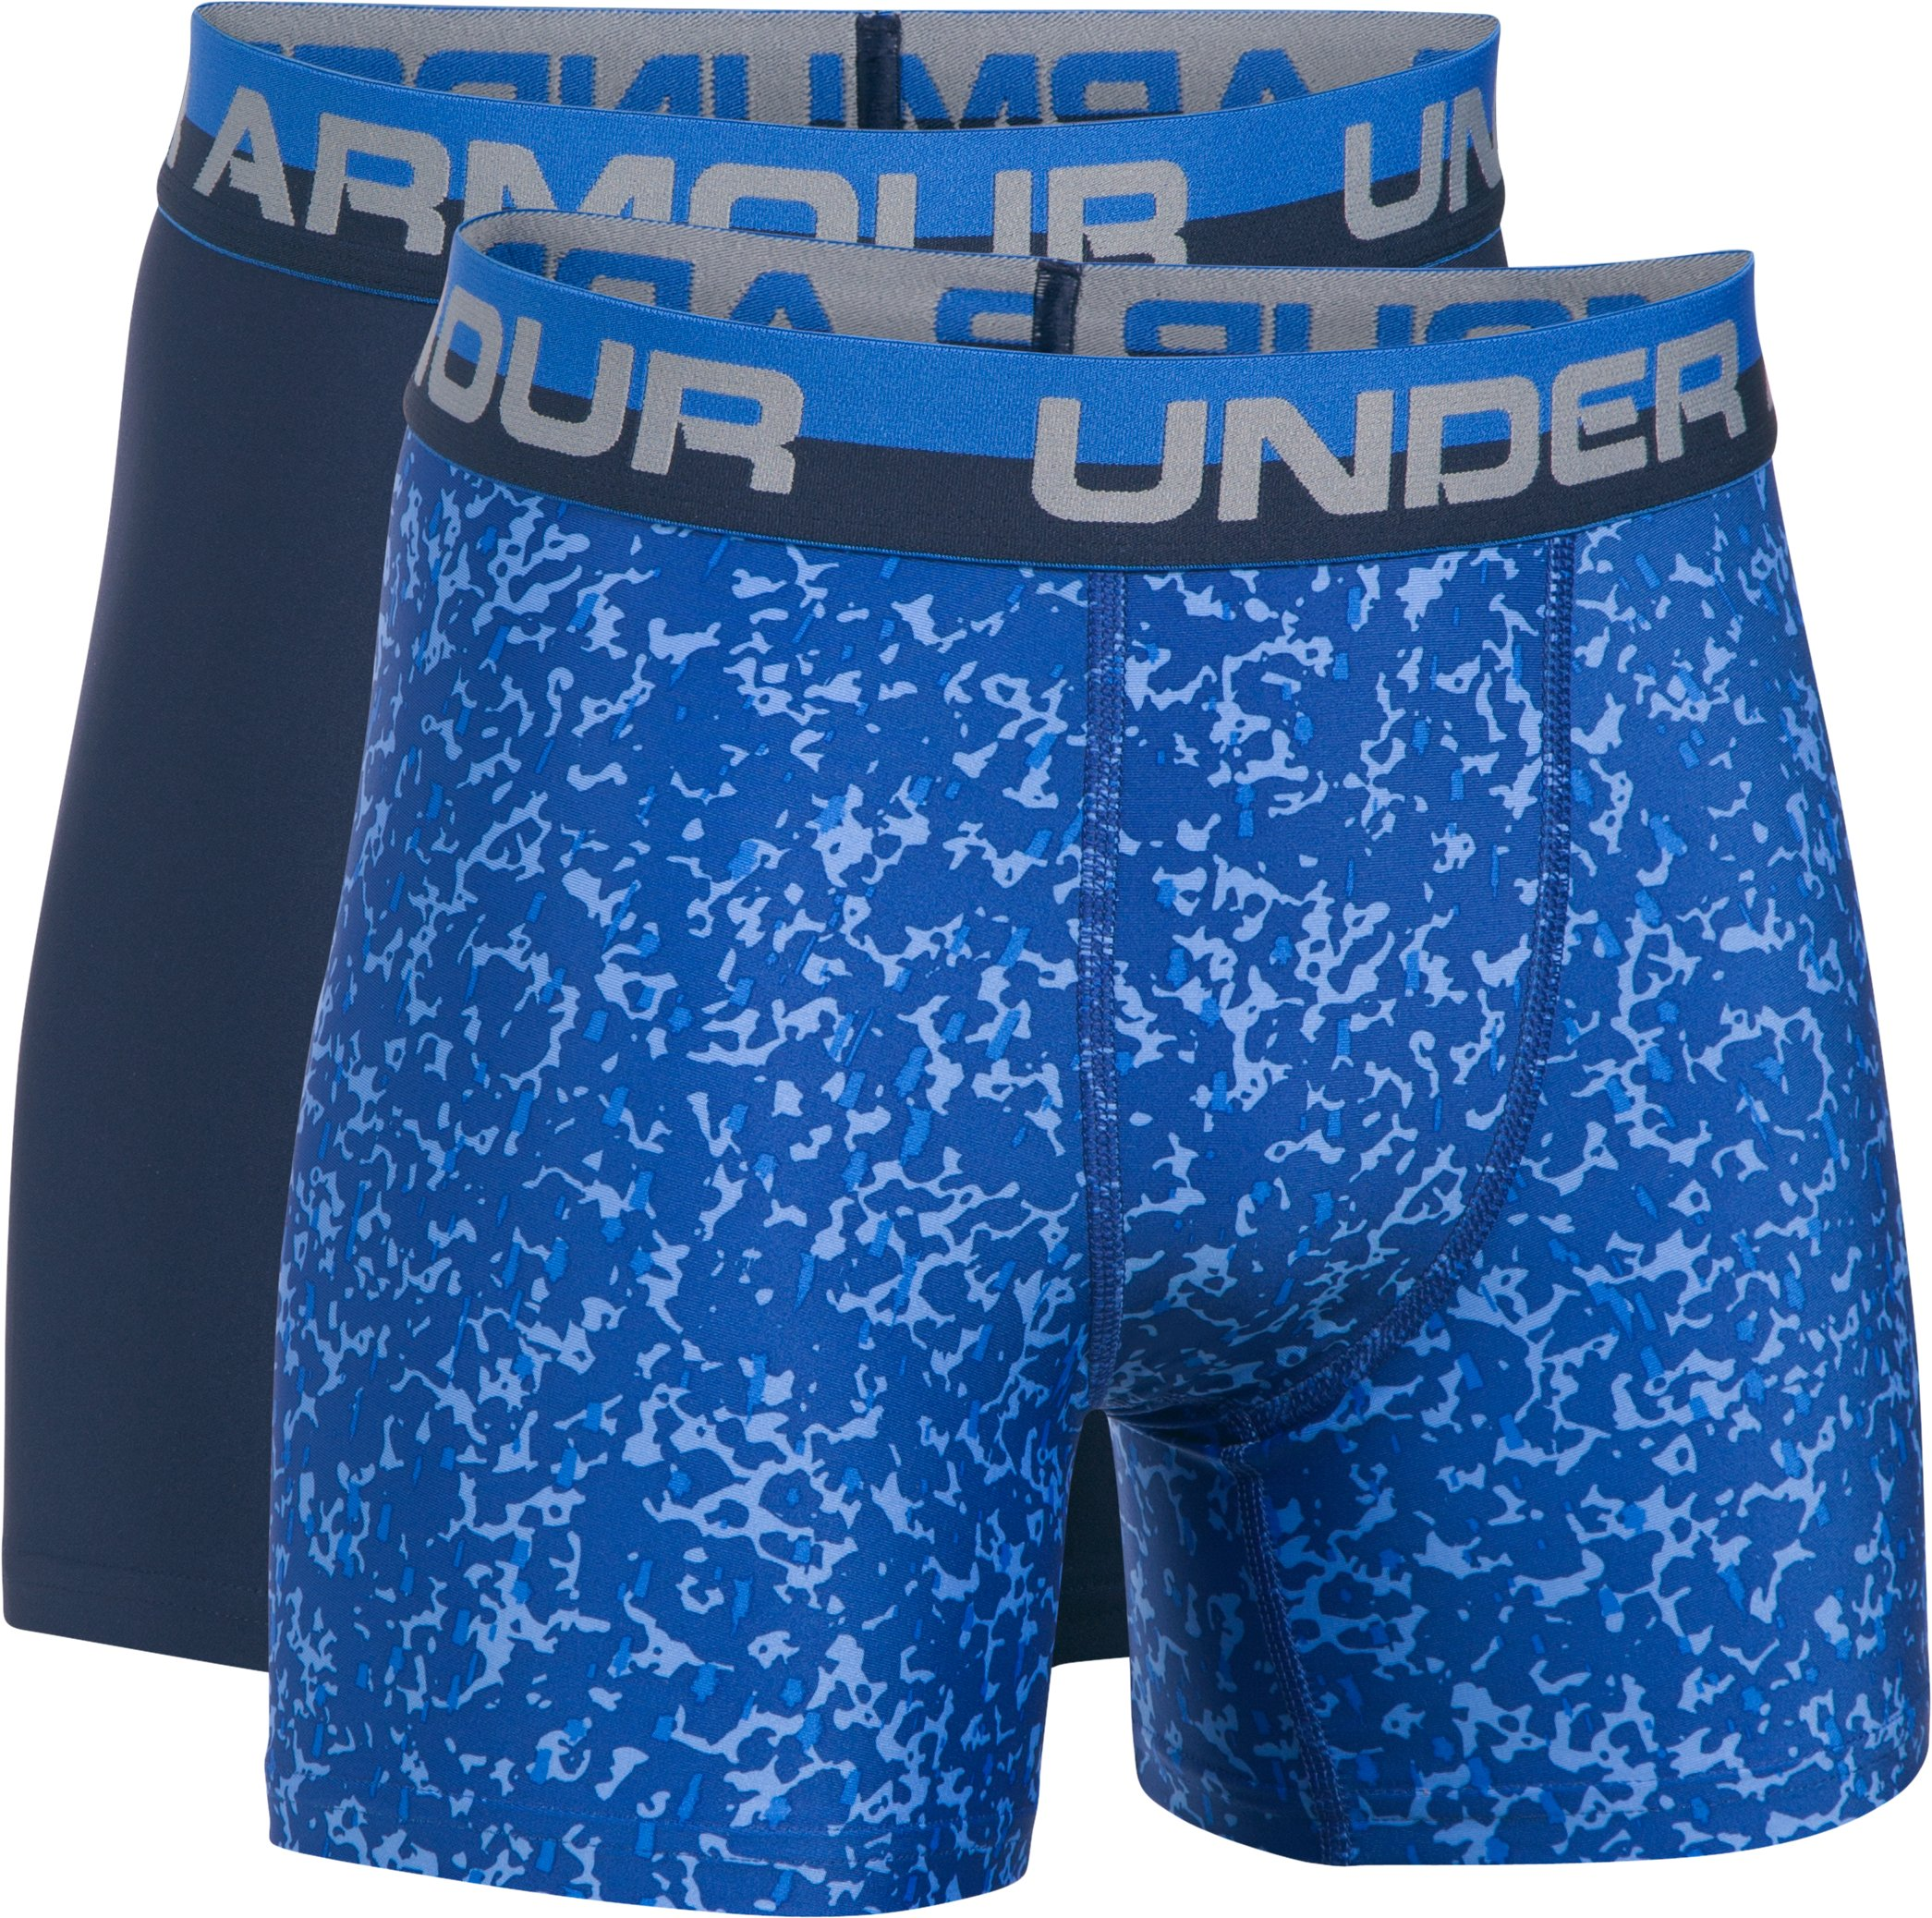 Boys' UA Original Series Boxerjock® Novelty 2-Pack, Midnight Navy, zoomed image